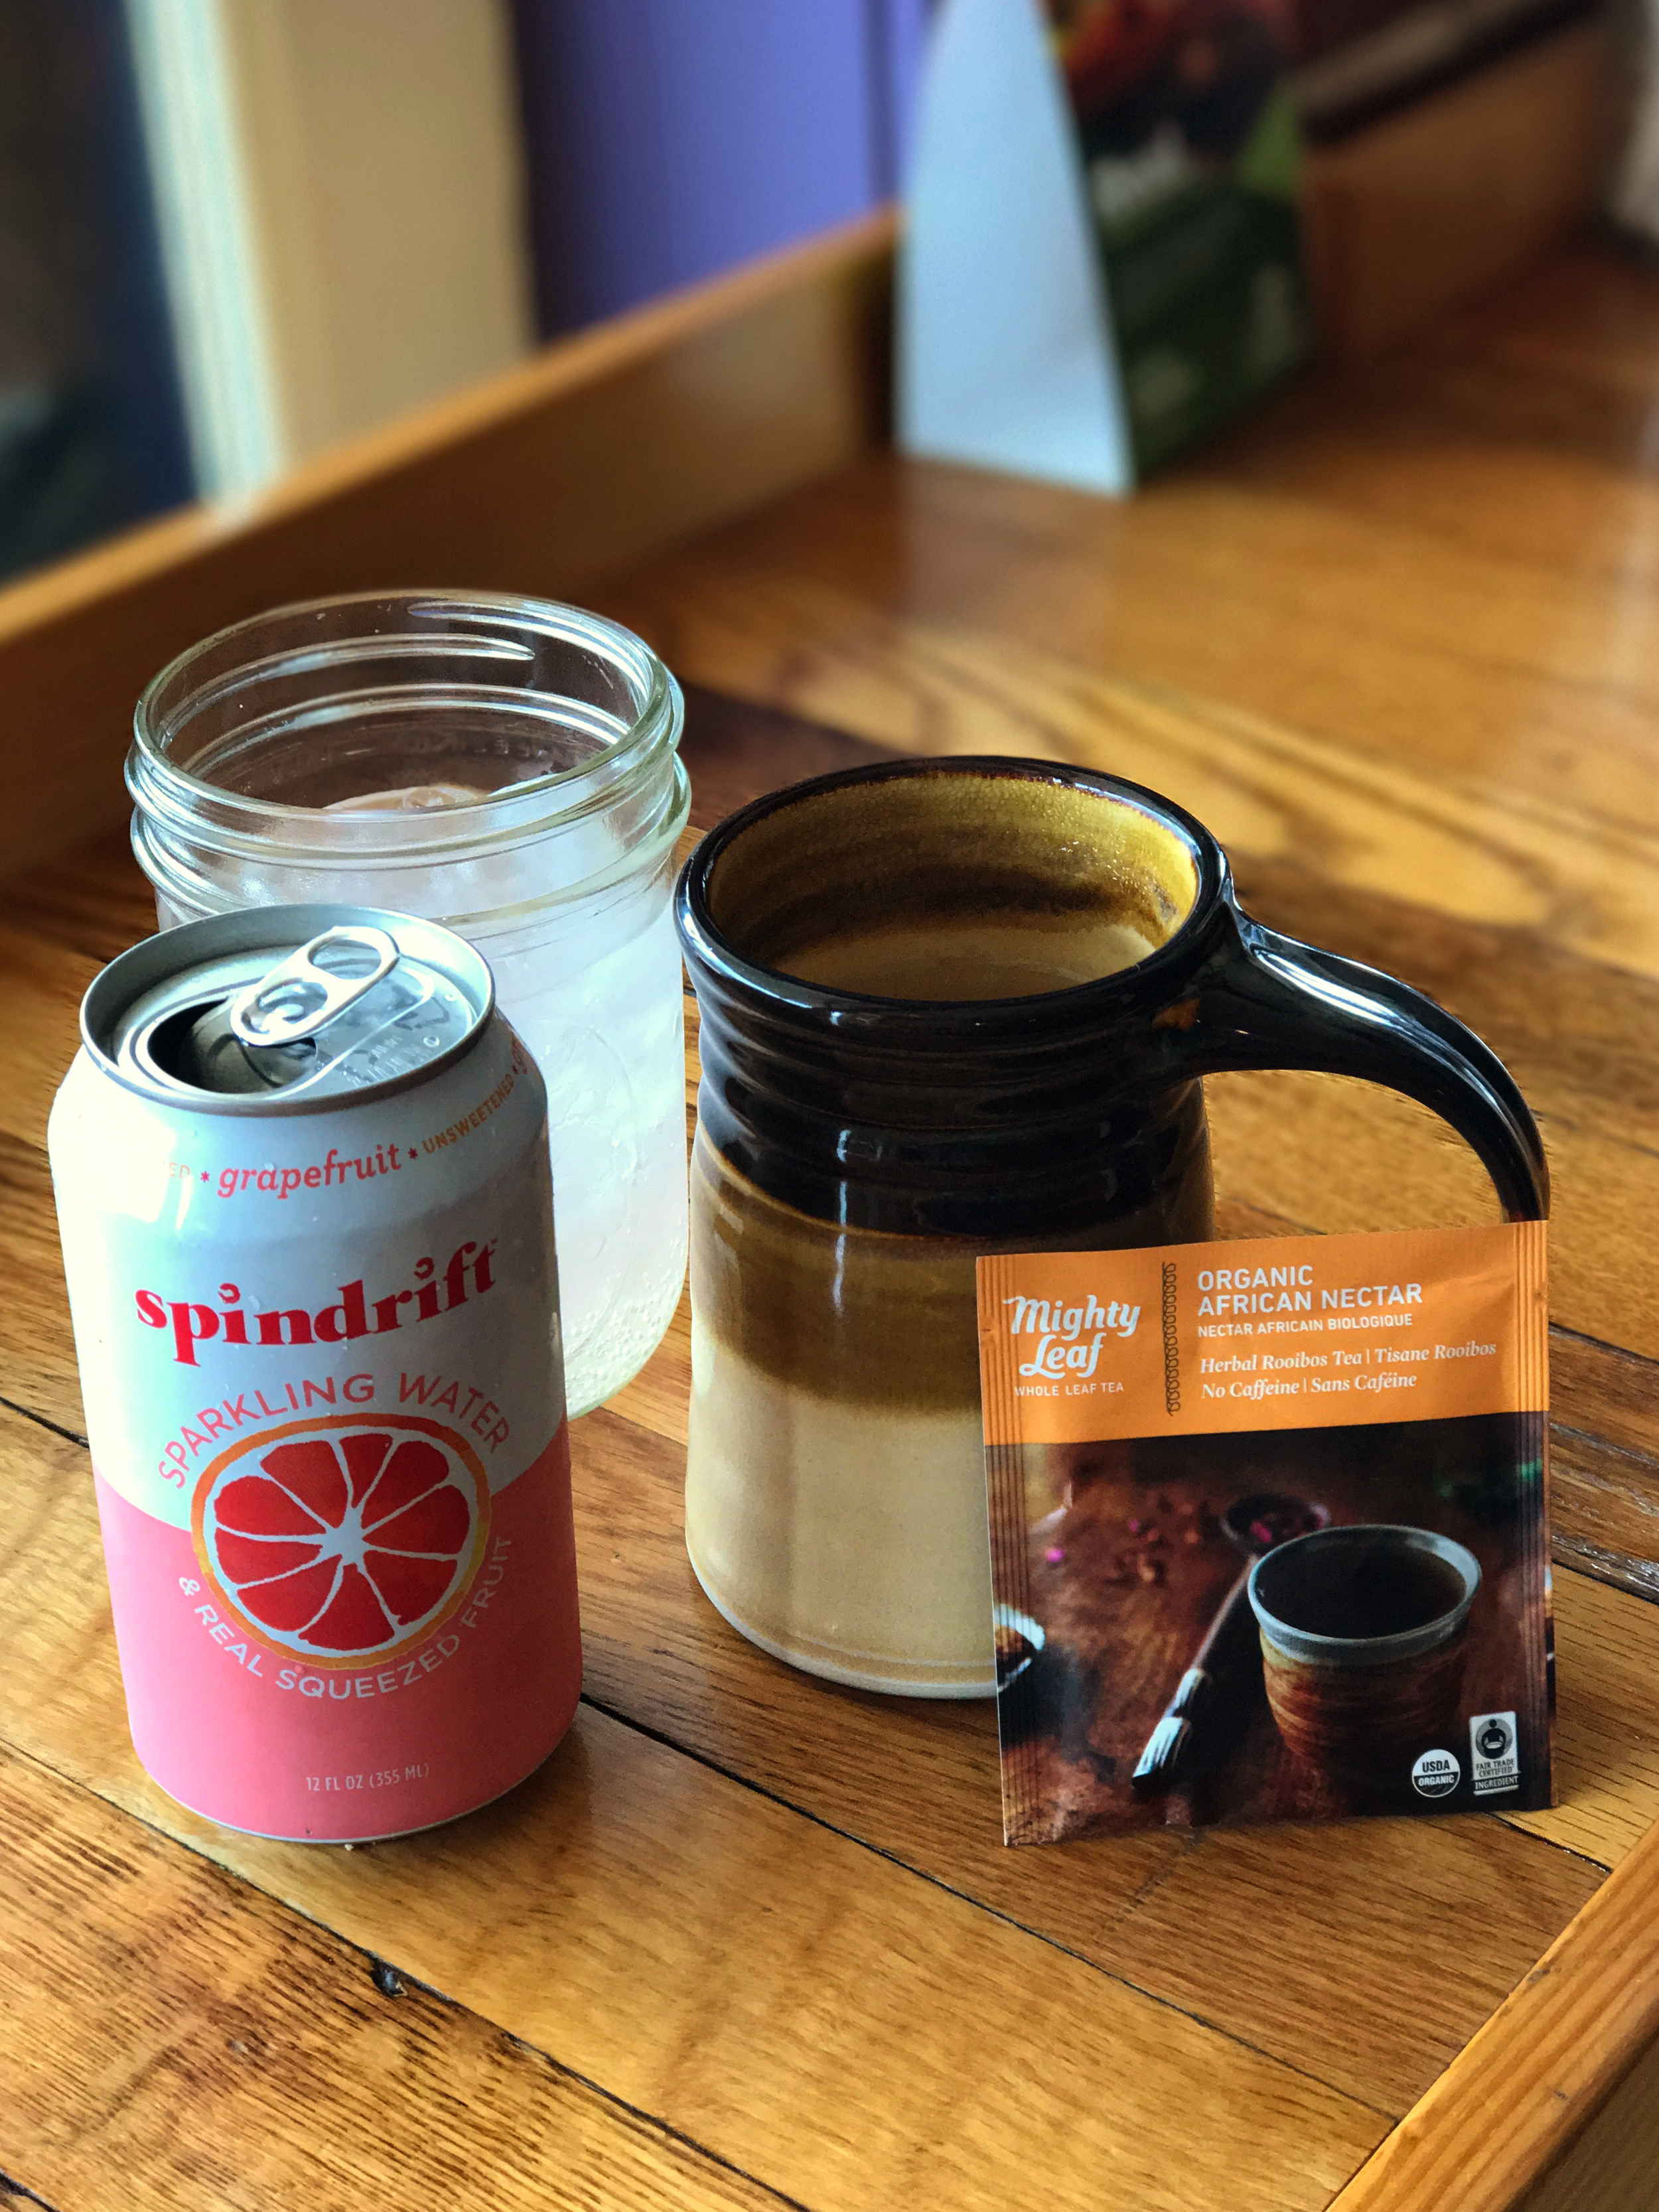 Grapefruit Spindrift and Organic African Nectar Tea from The Purple Fiddle